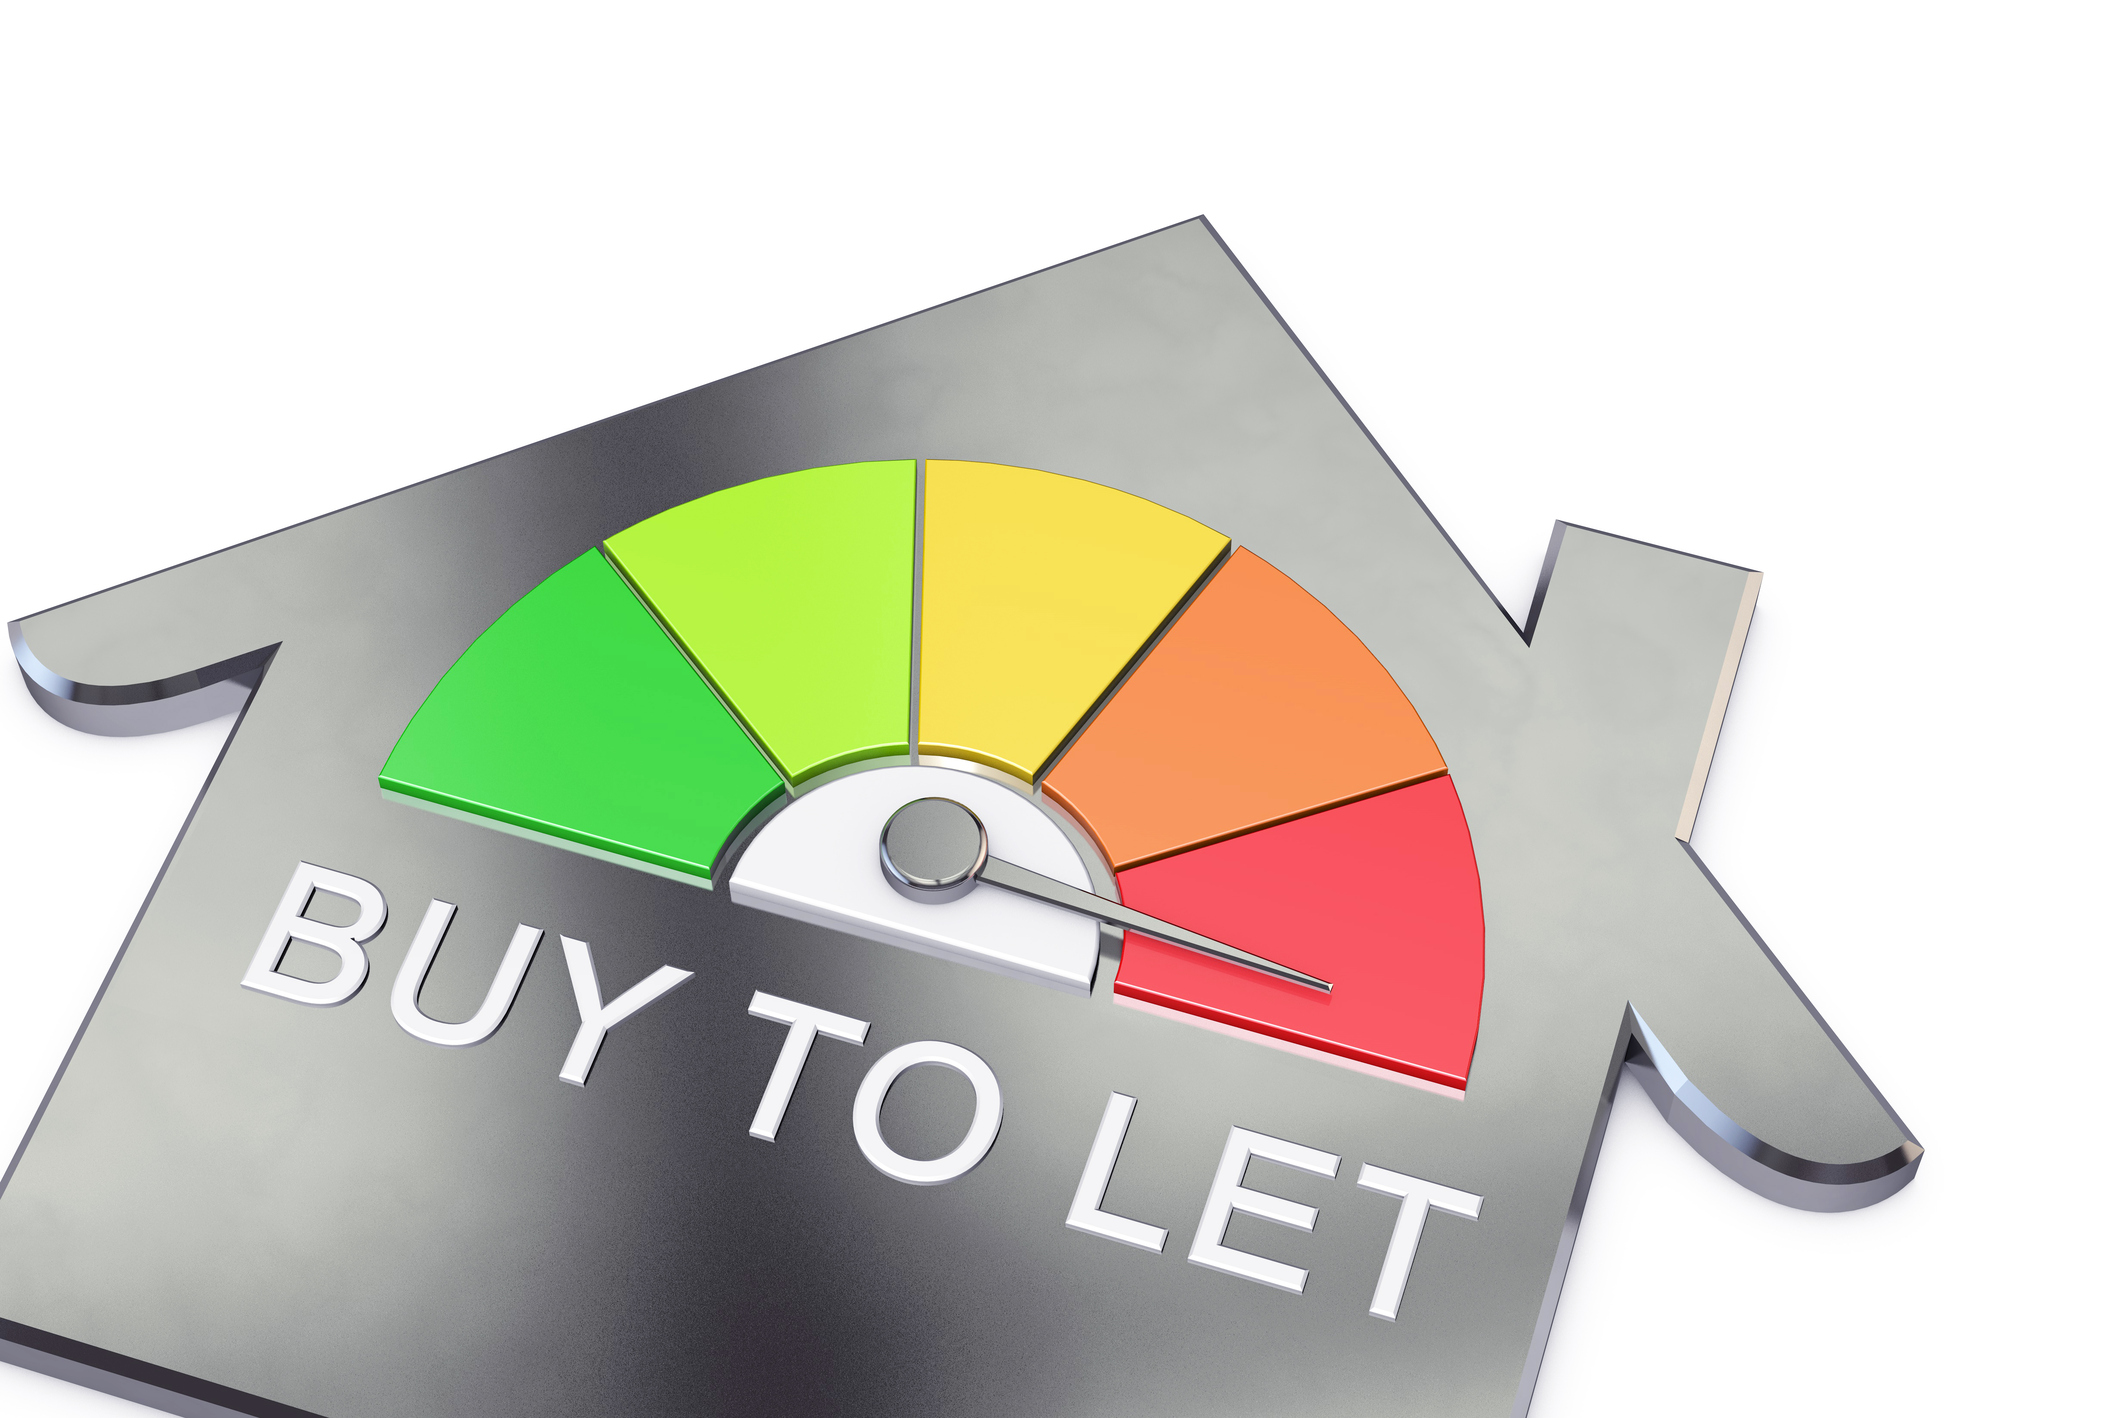 Buy-to-let mortgage calculator